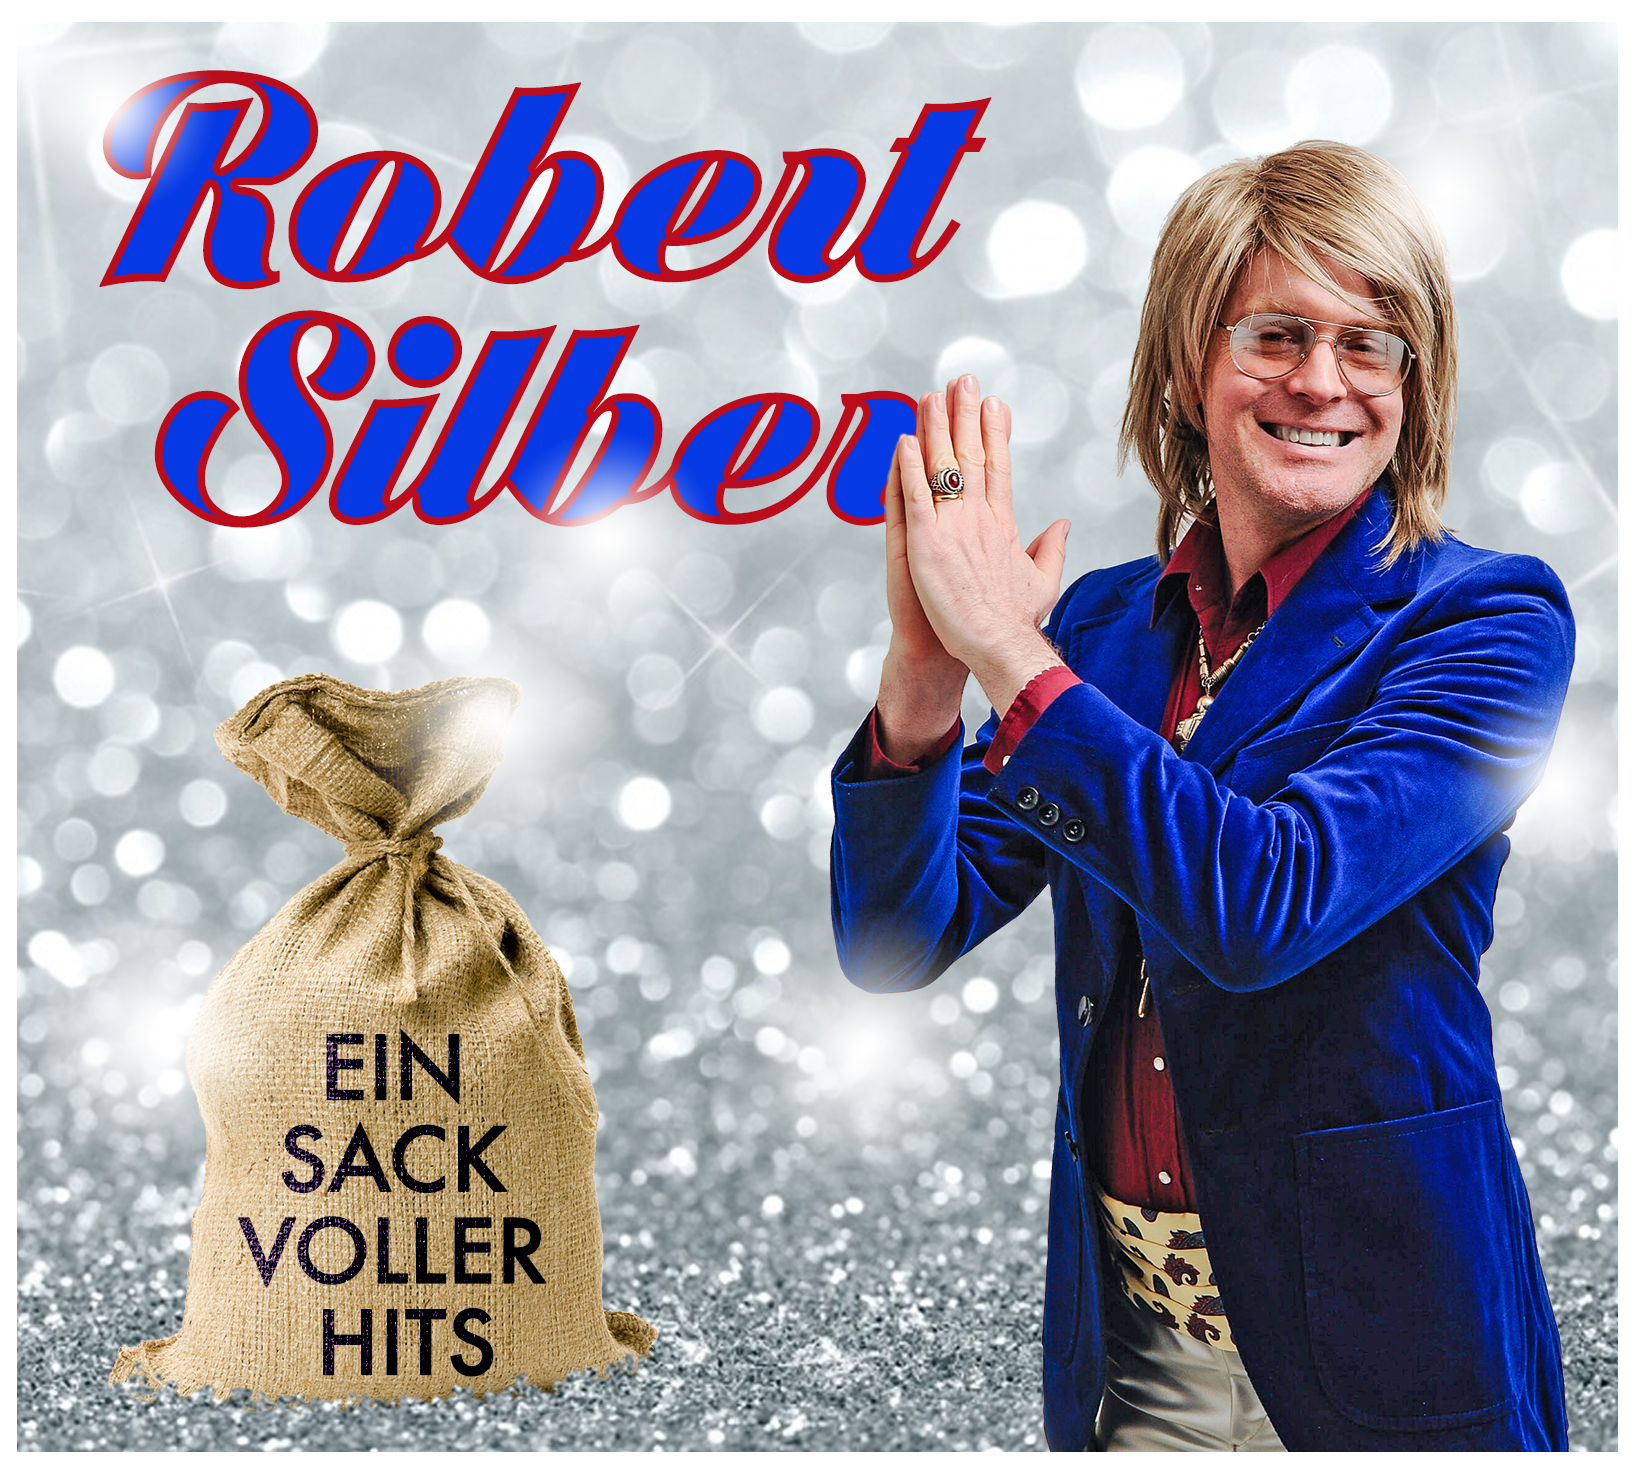 "Robert Silber ""Ein Sack voller Hits"" CD Cover"